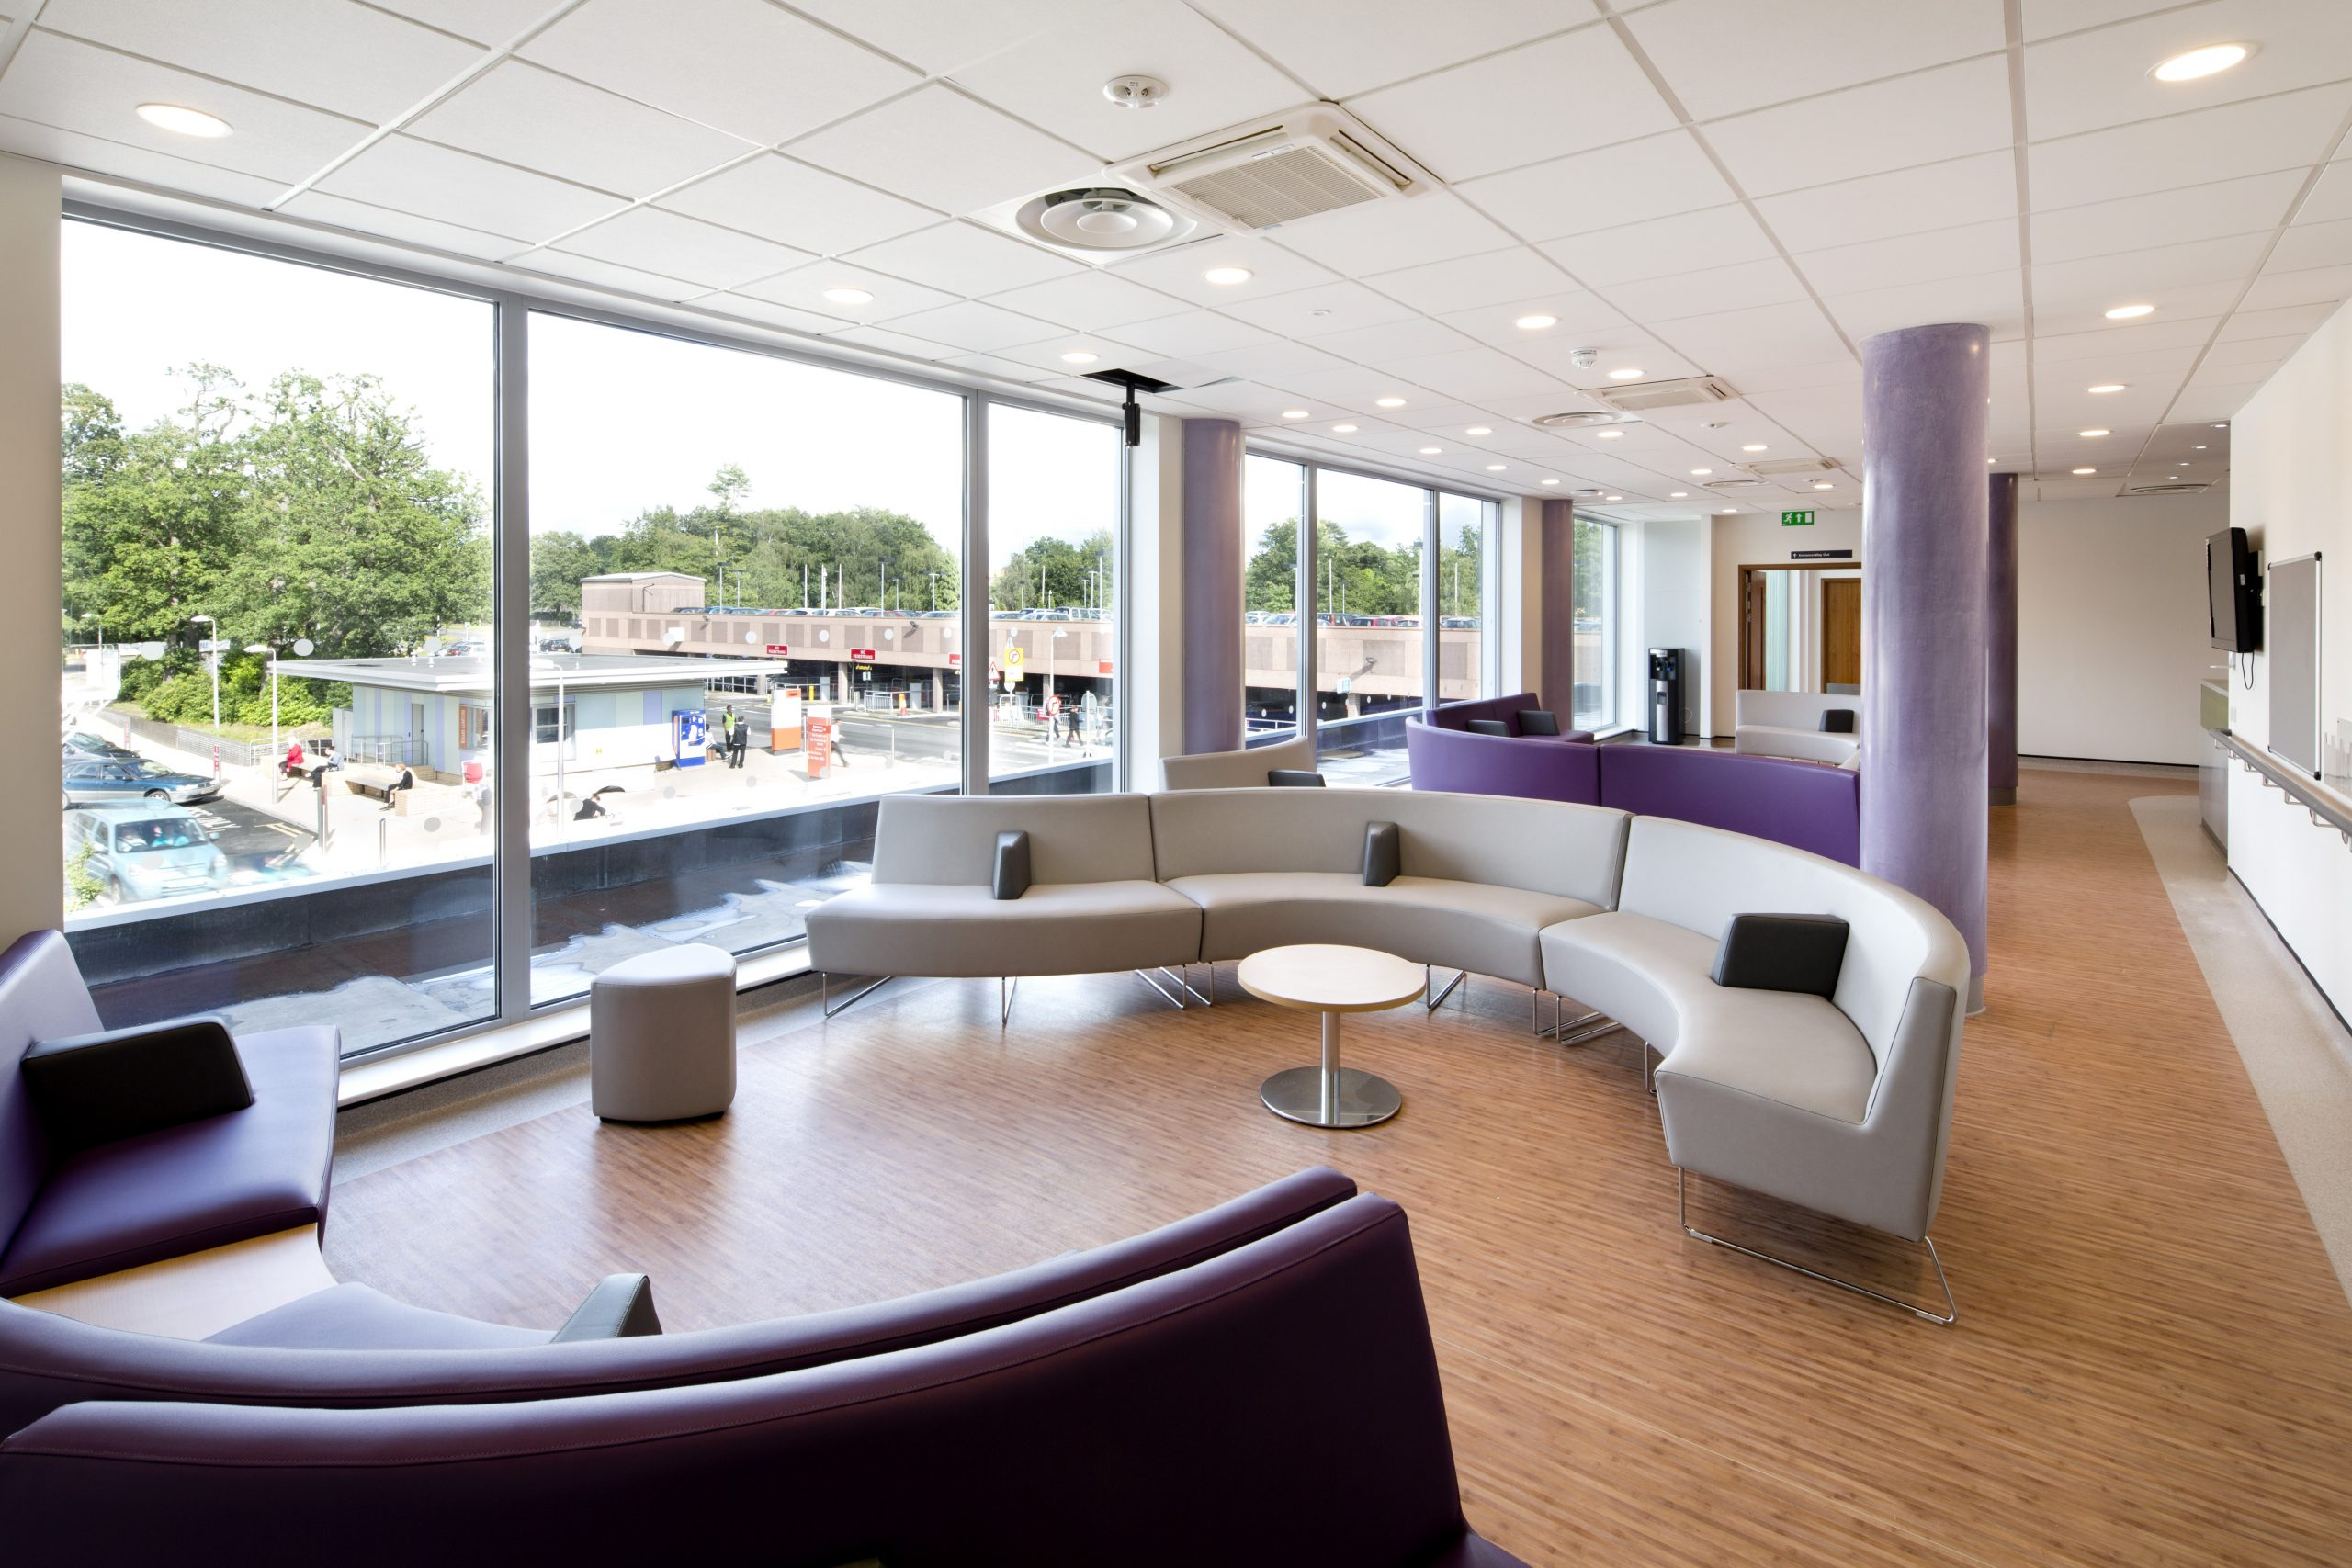 NHS Emergency Department, Subwait Areas, and Day Surgery, Surrey